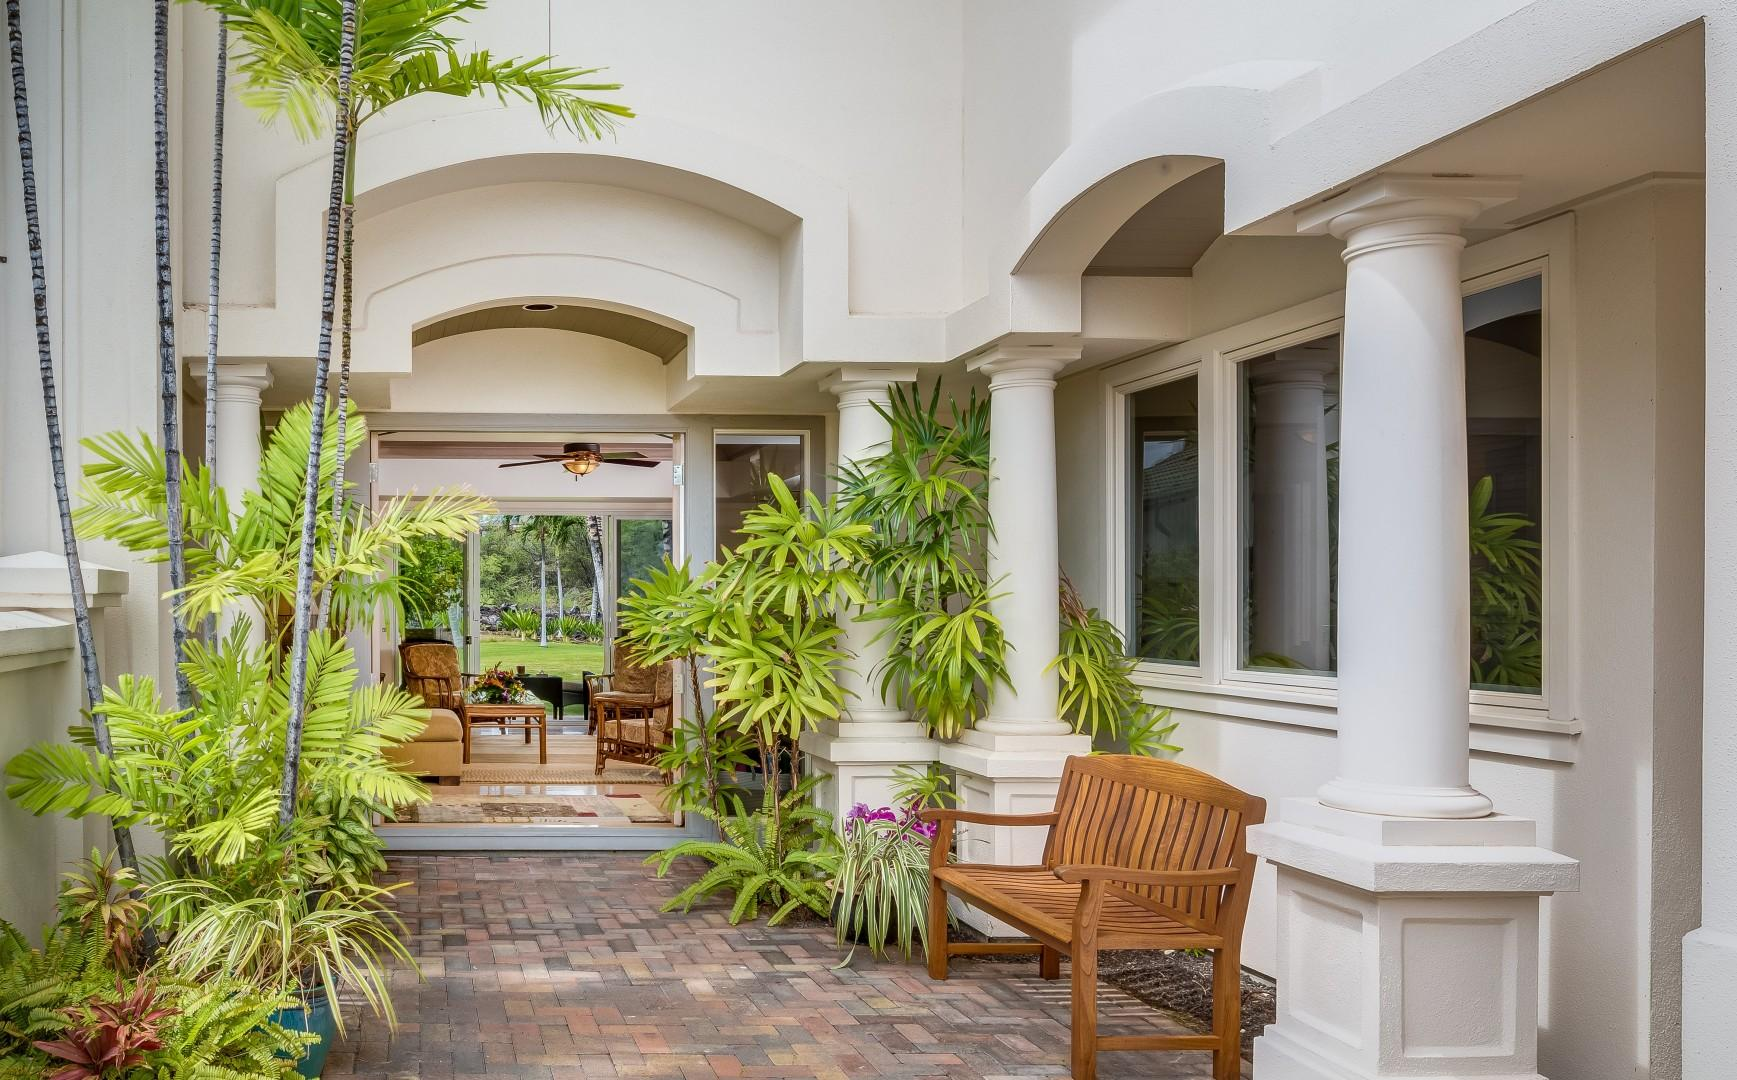 Beautiful Courtyard Leads Into Living Room and Out Into Gardens